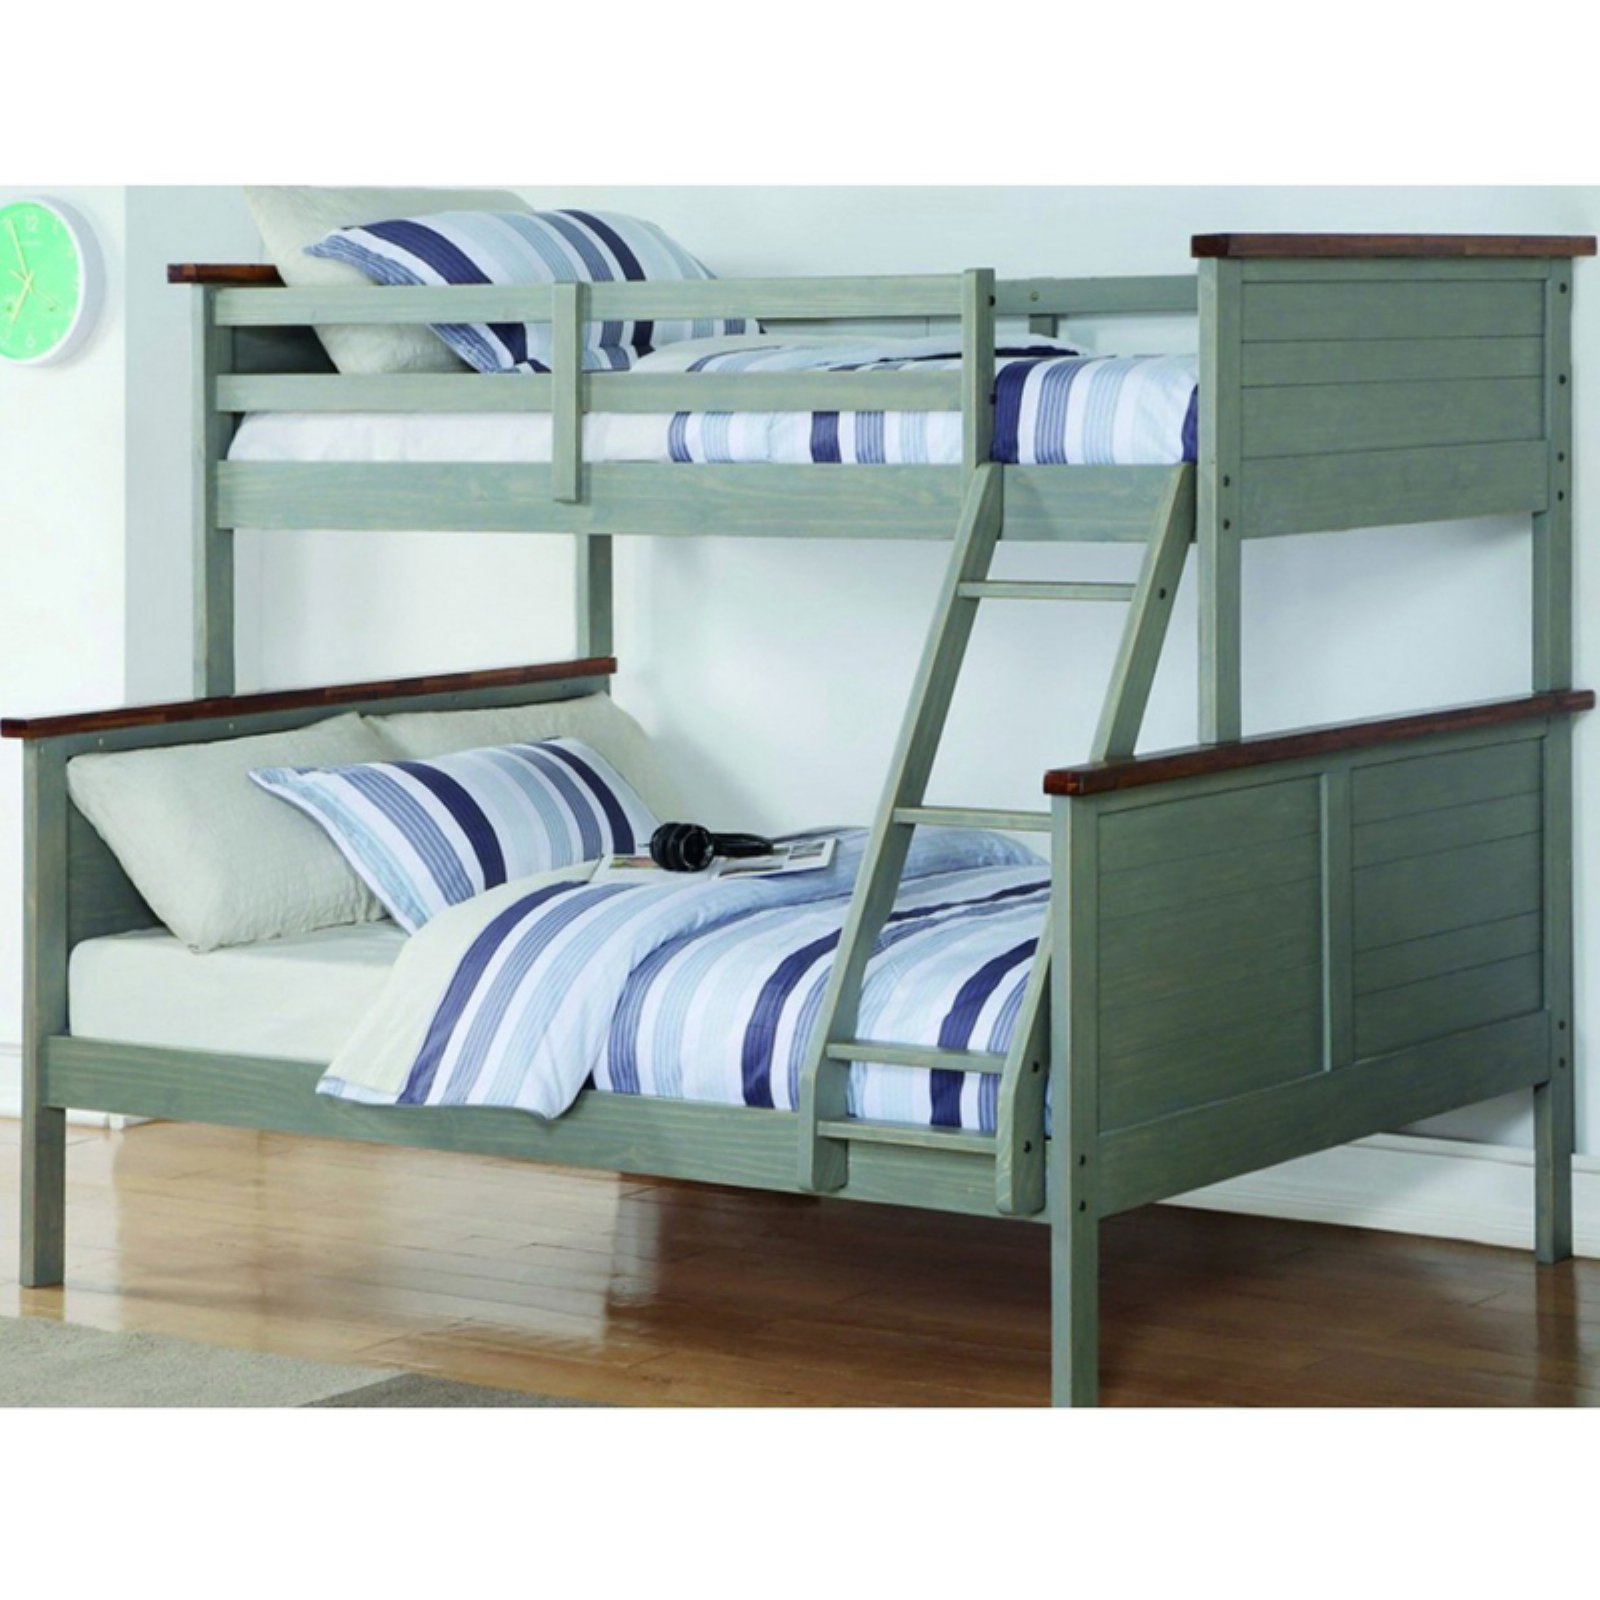 Donco Kids Twin over Full Panel Bunk Bed - Washed Denim